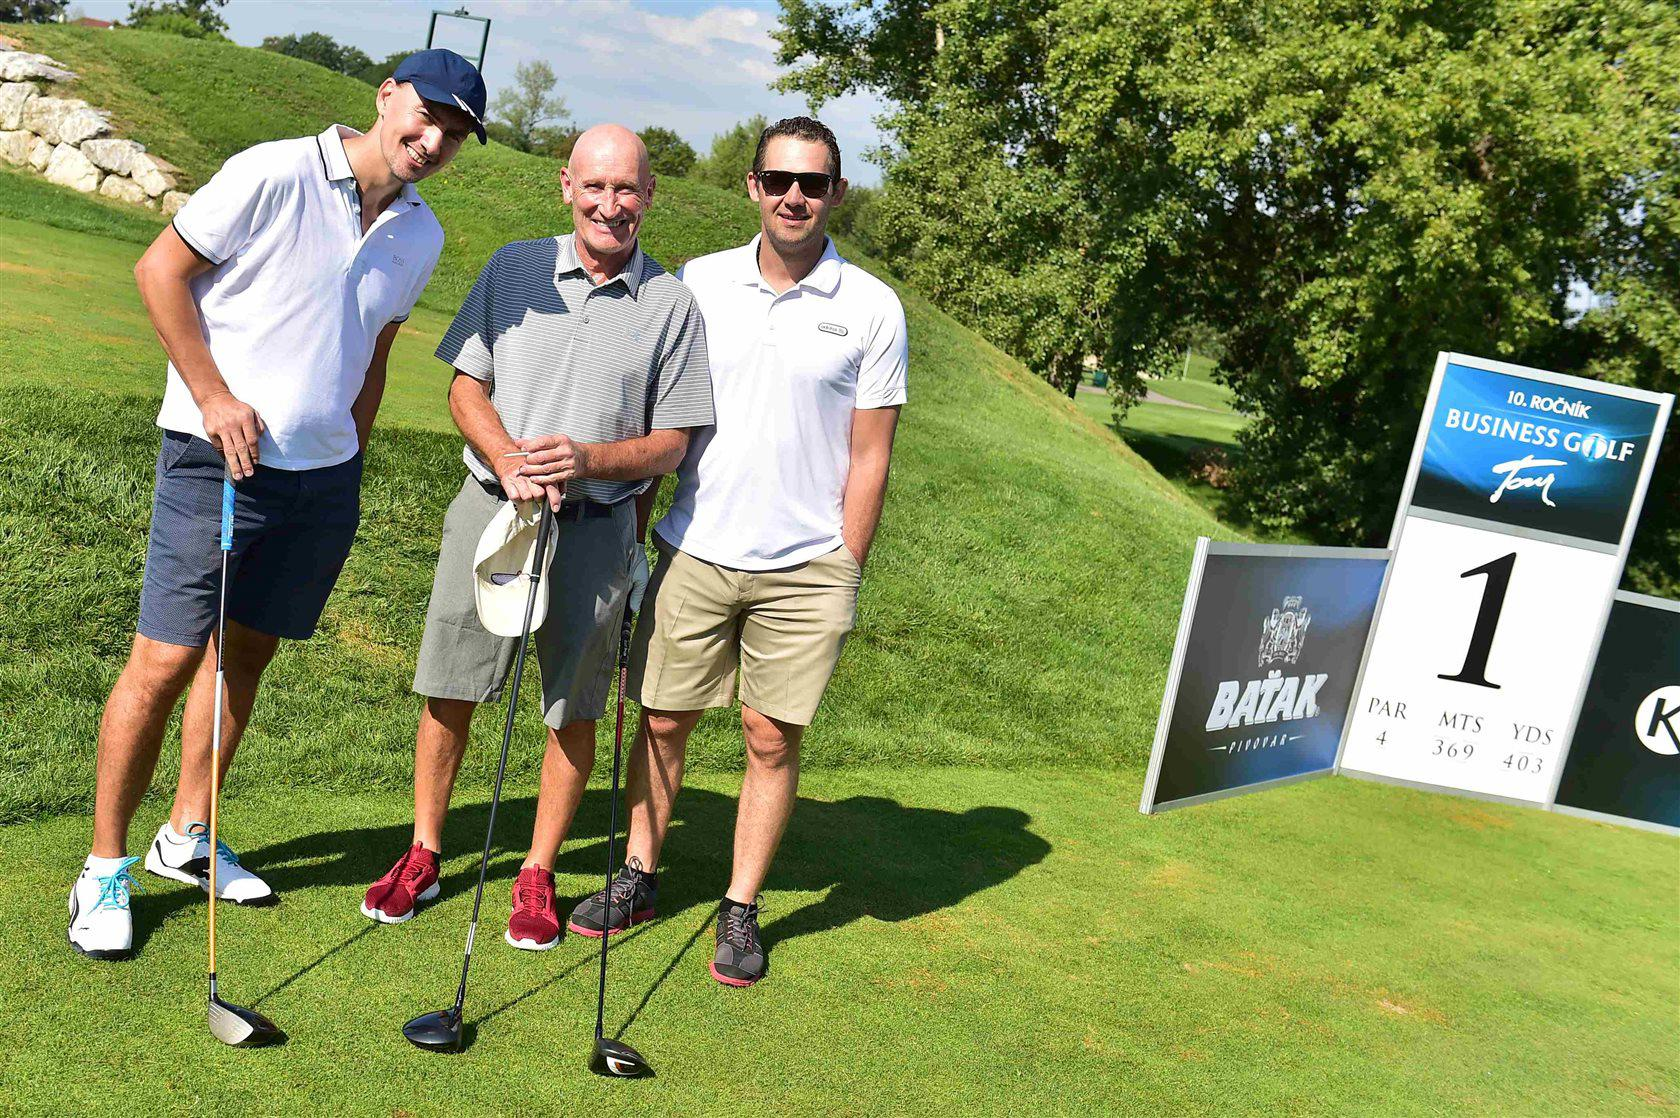 The latest Tournament of Business Golf Tour 2018